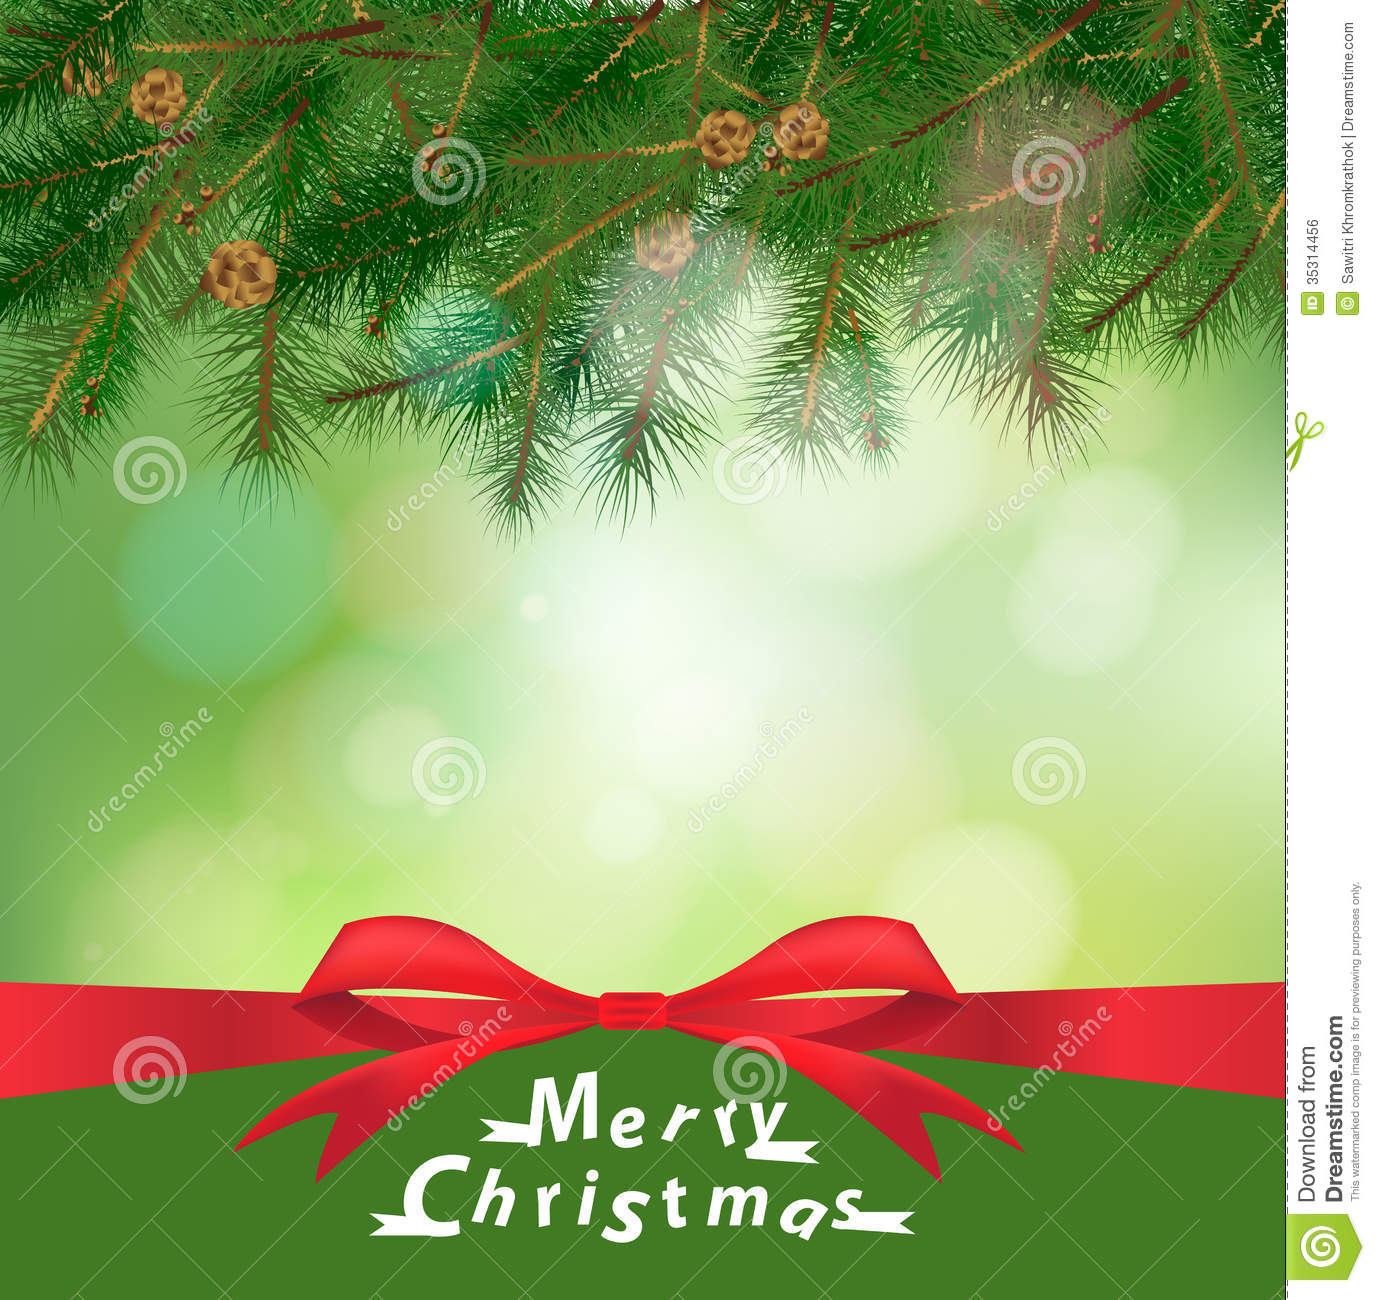 Vector Christmas Holiday Background Royalty Free Stock